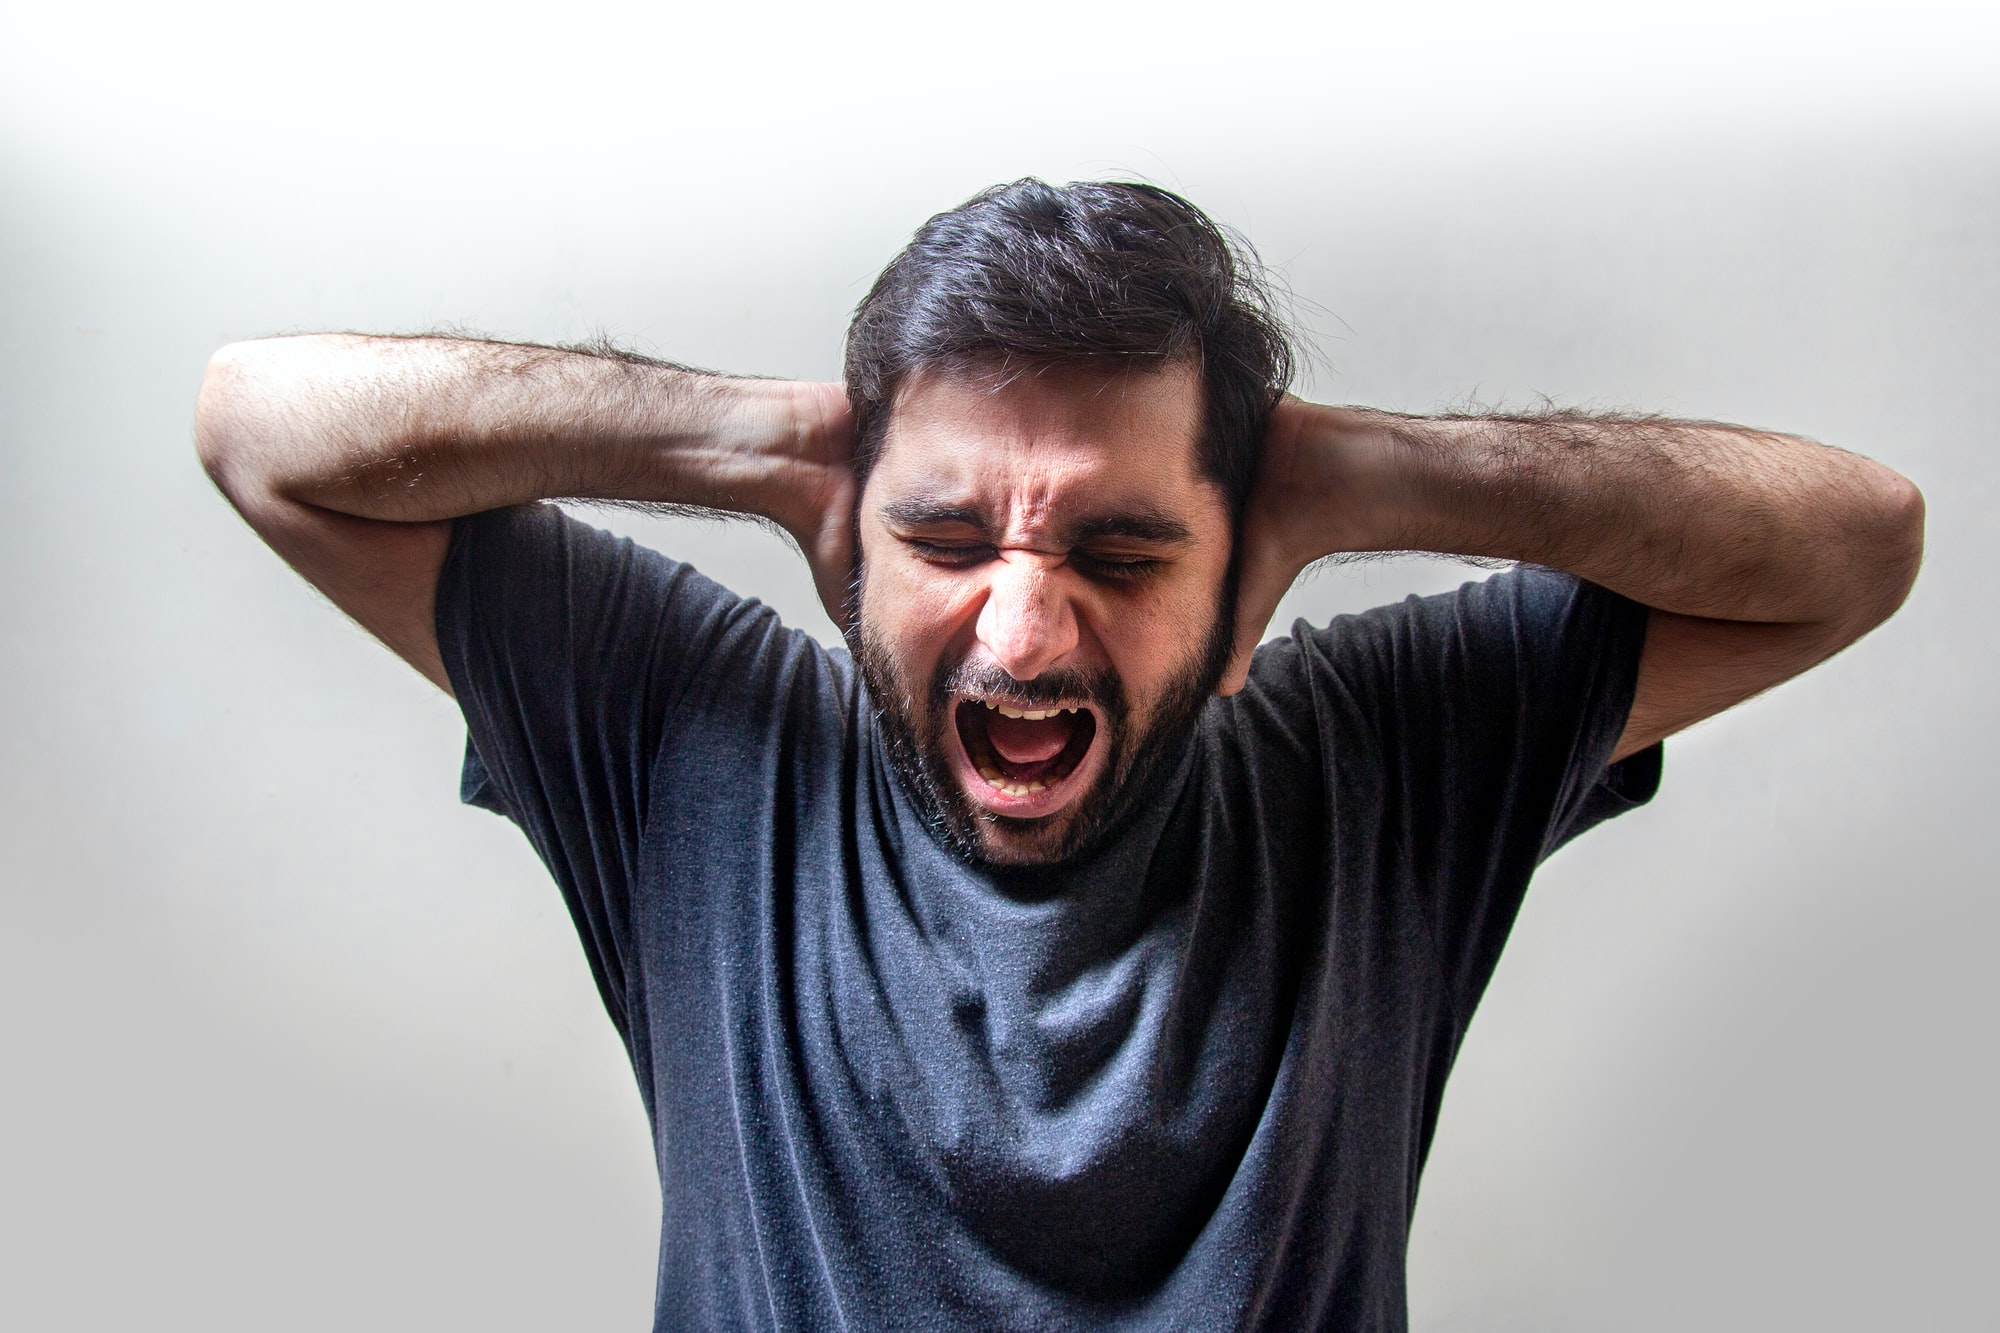 Frustrated Young Man Screaming in Fear